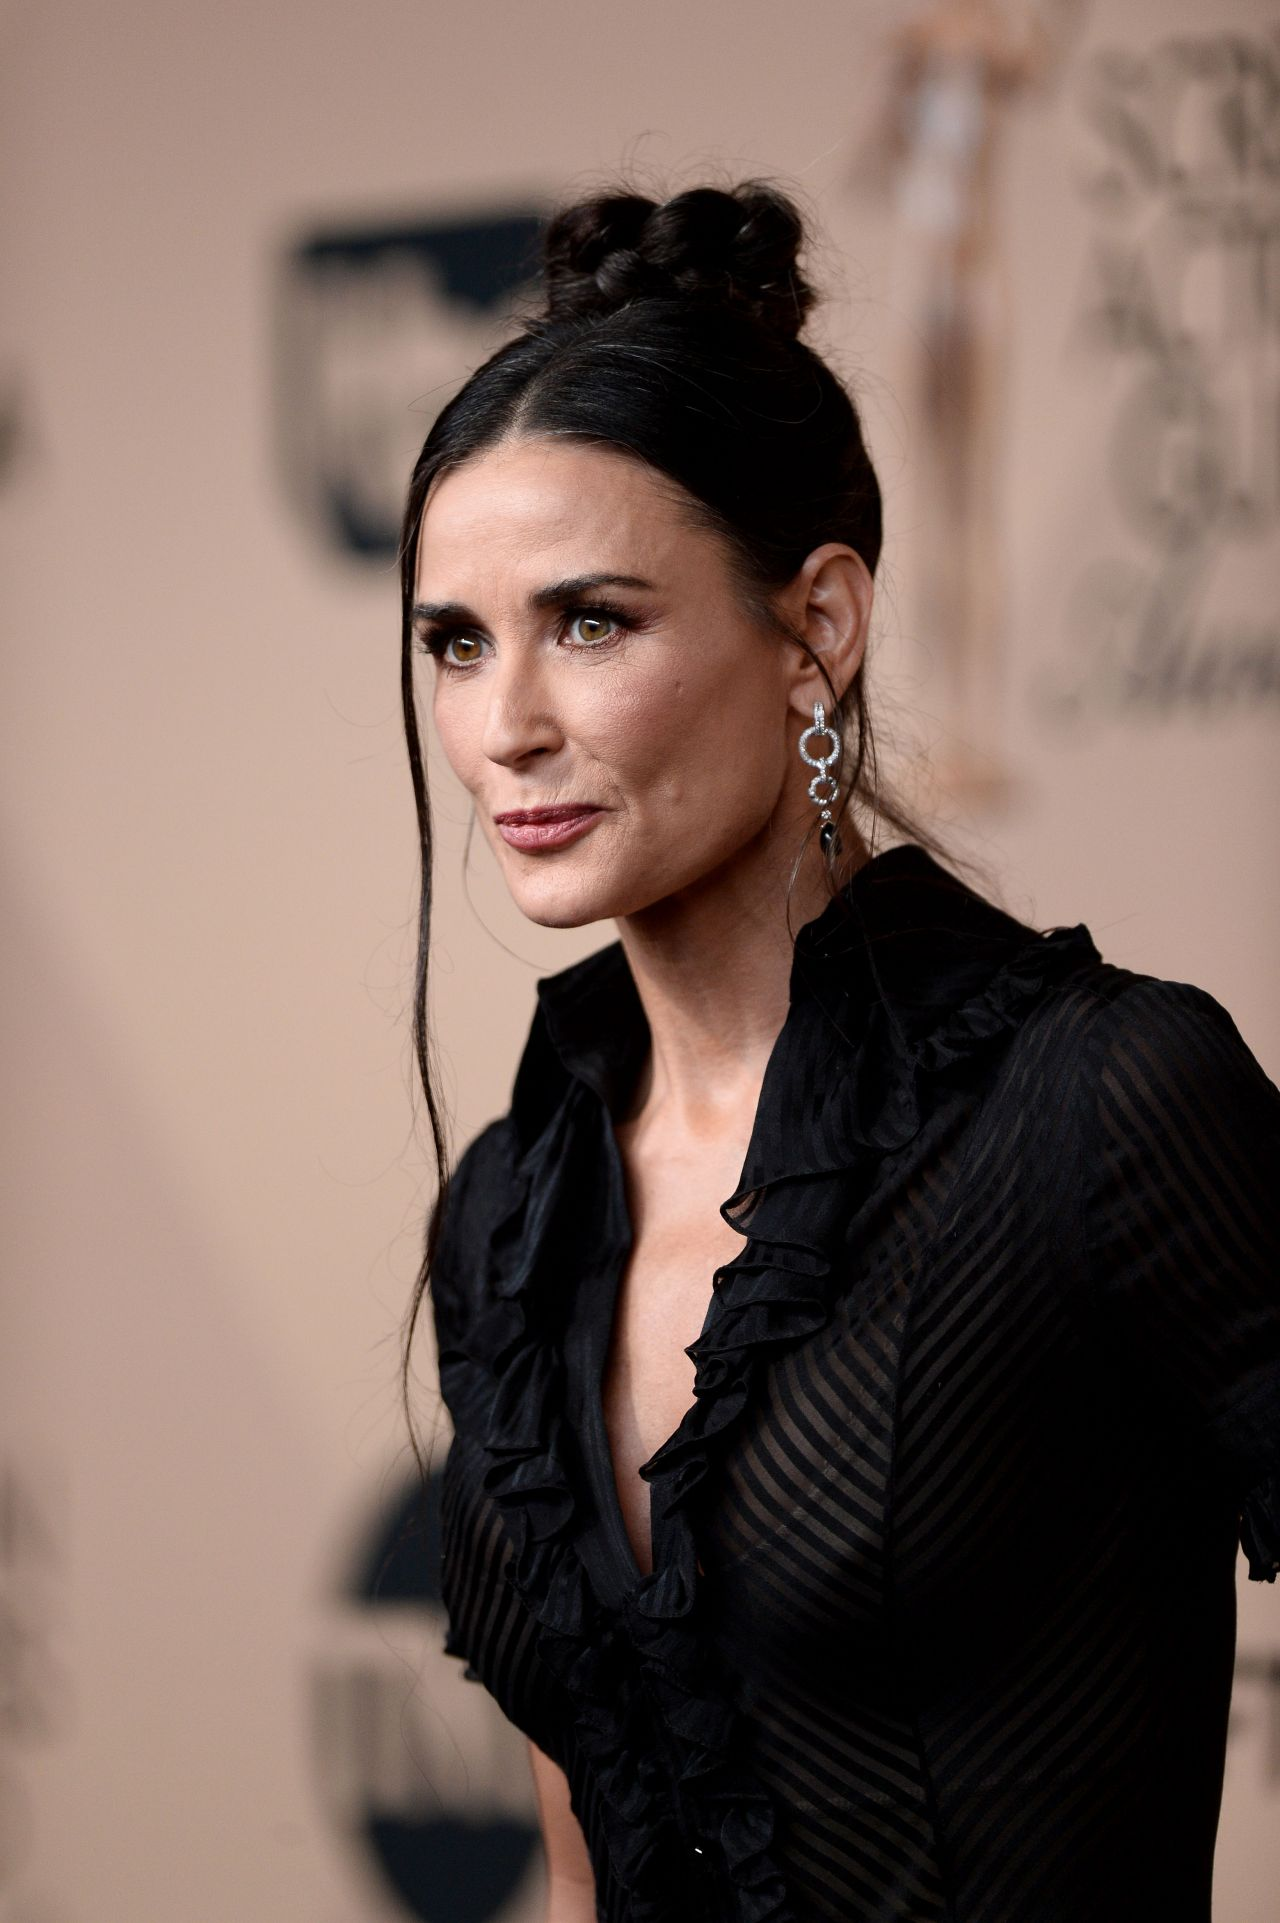 Demi Moore Sag Awards 2016 At Shrine Auditorium In Los Angeles